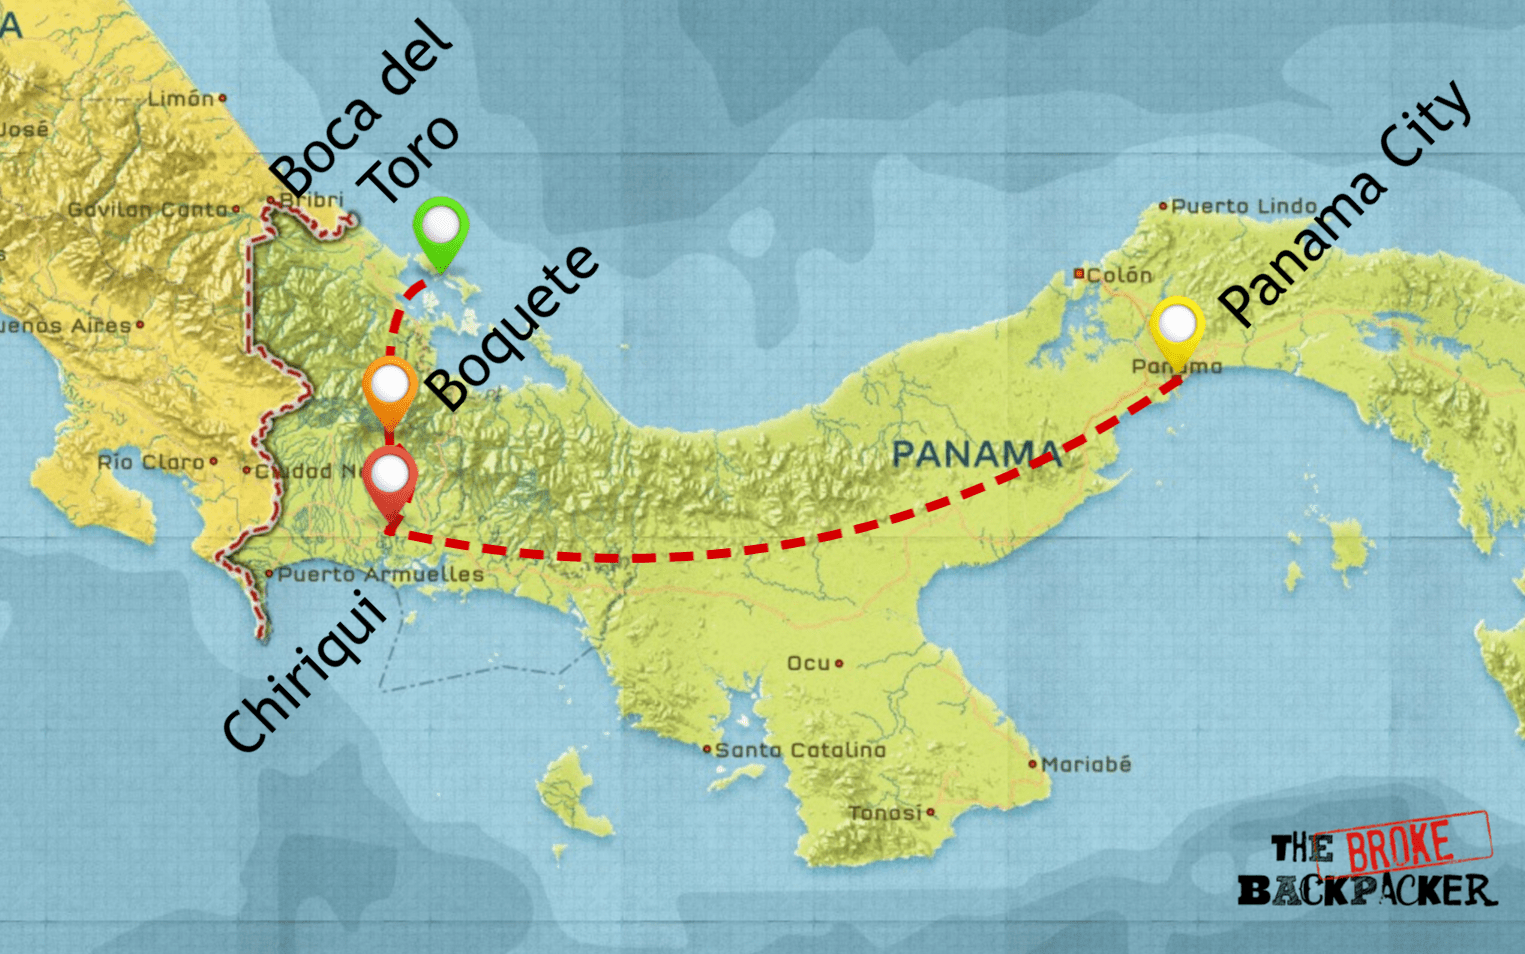 backpacking panama itinerary 10 days